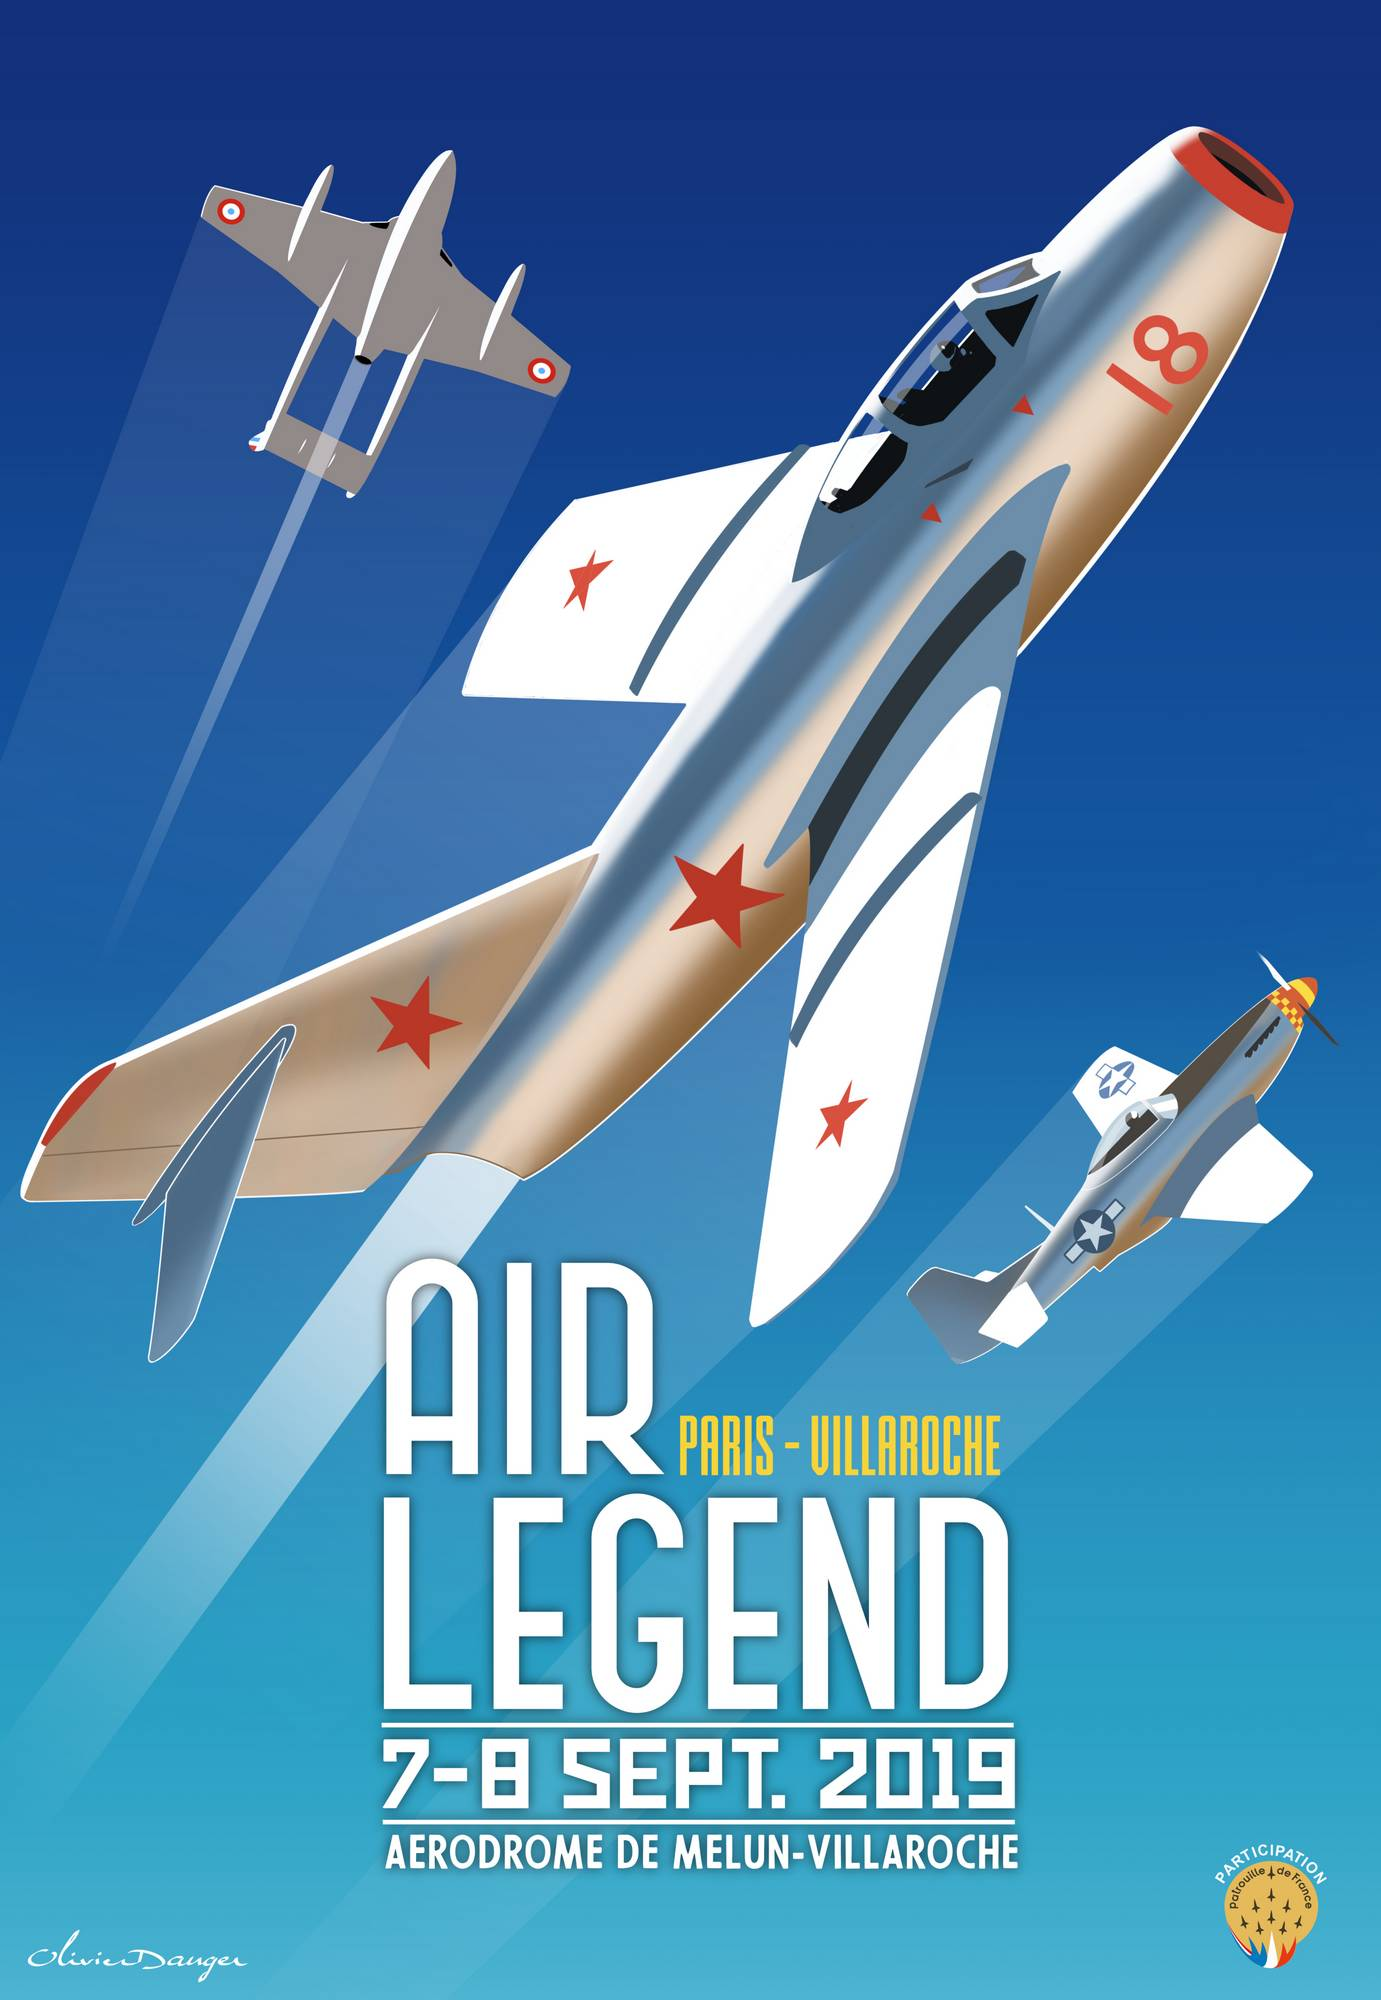 Paris-Villaroche Air Legend